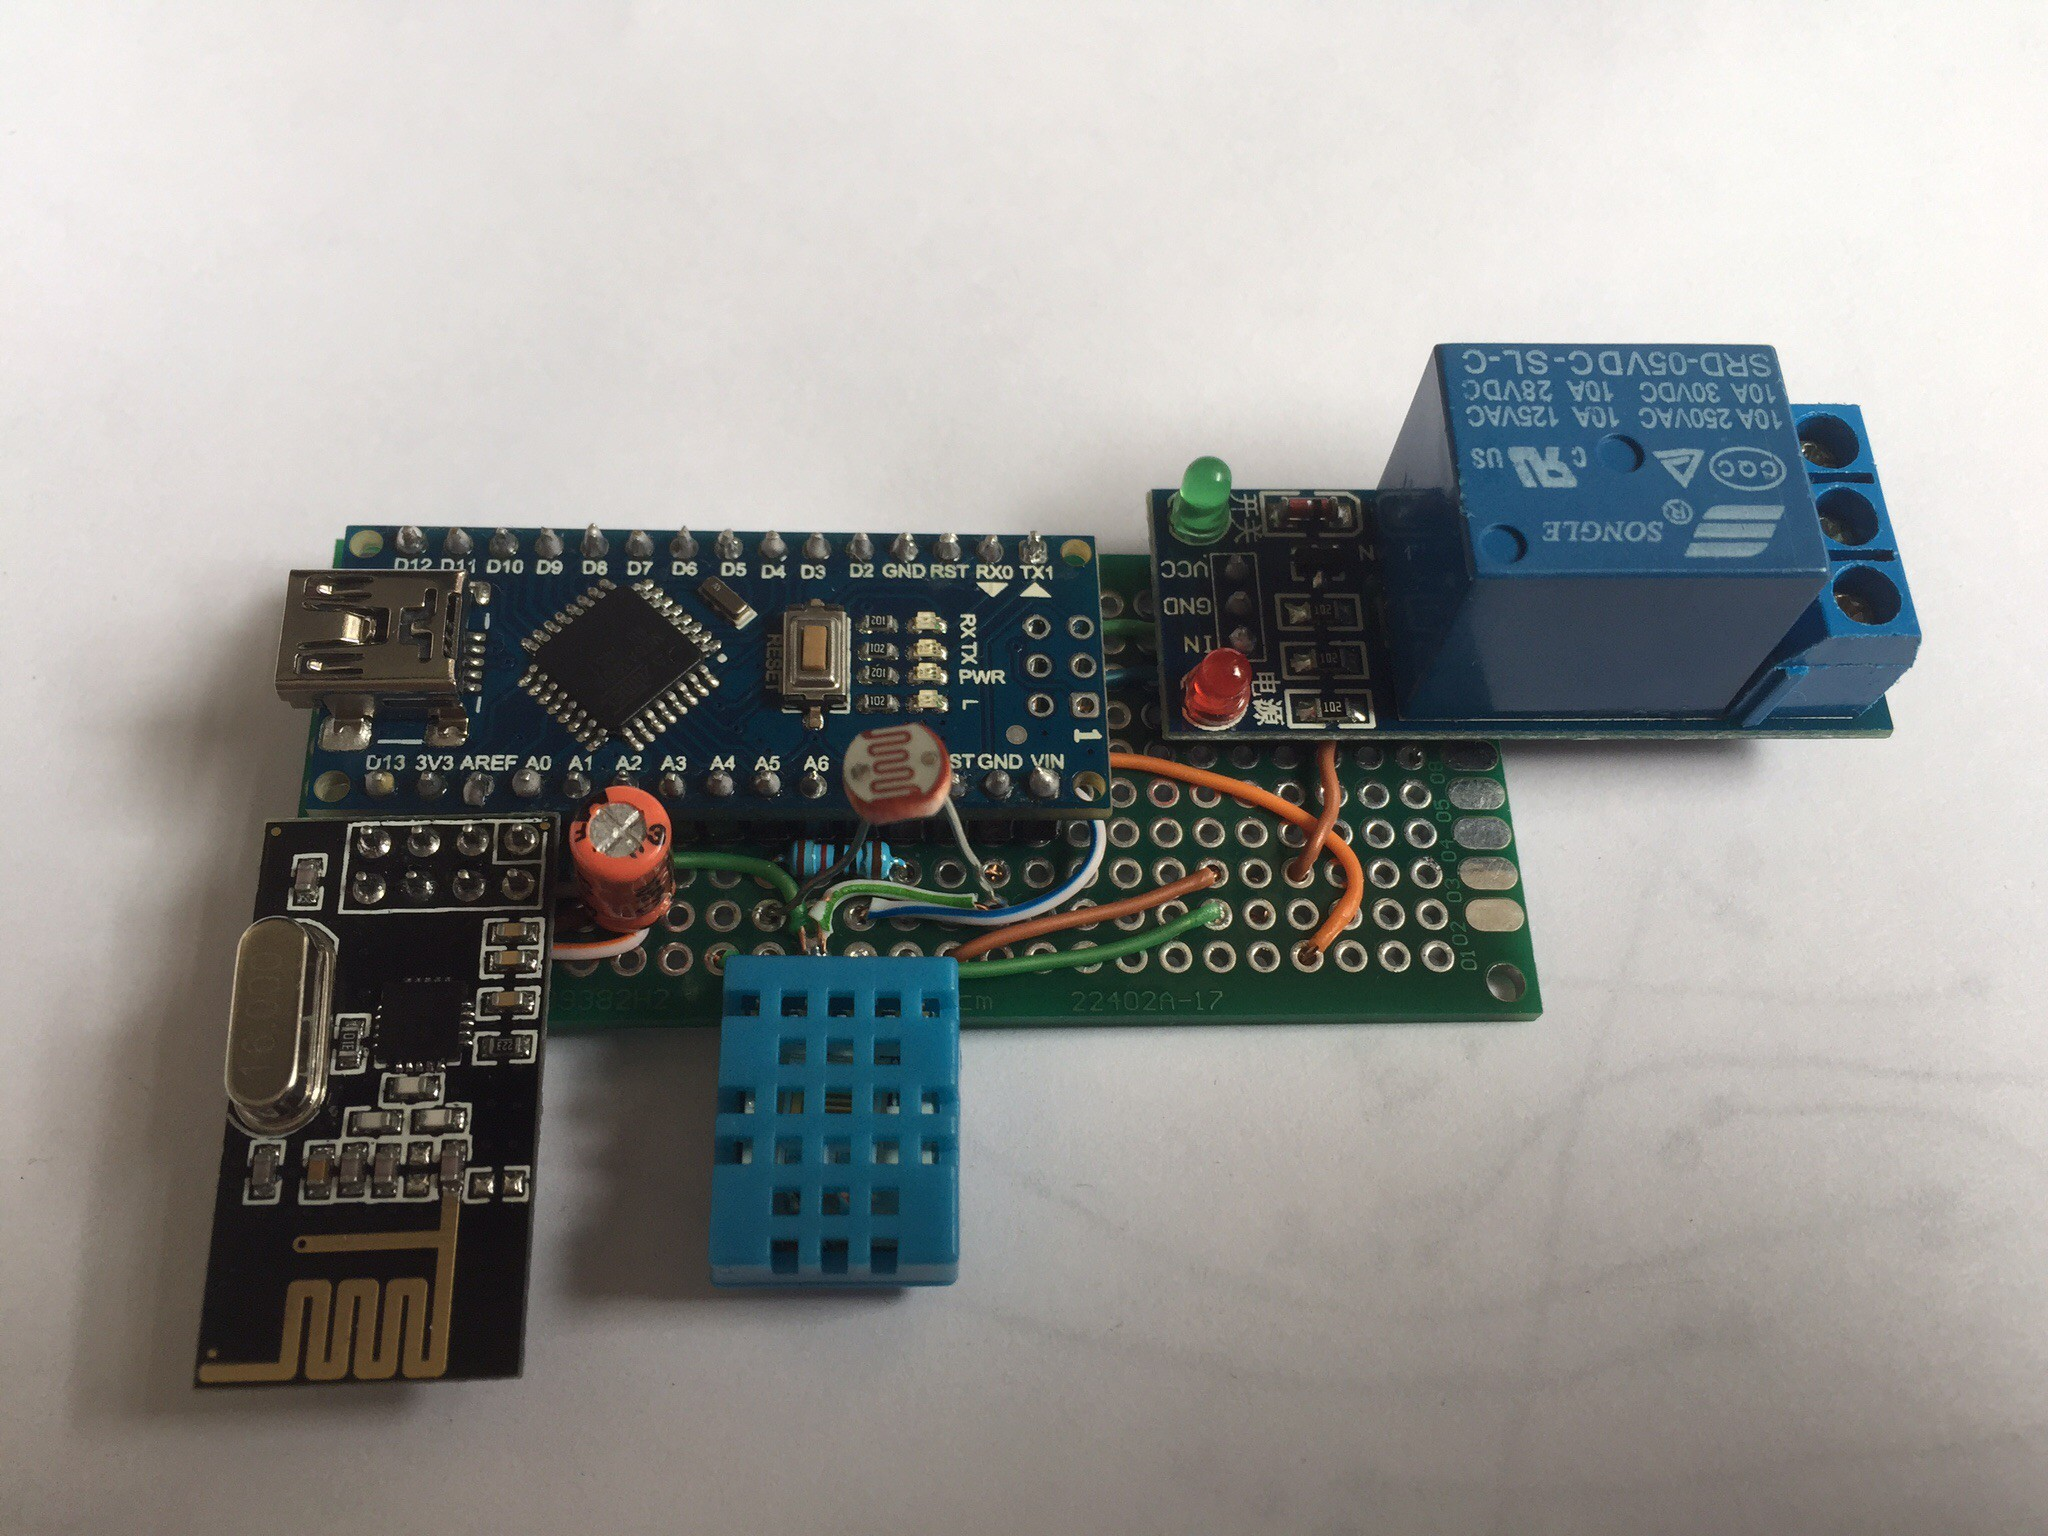 Home Automation Using Rf Mesh Network And Arduino Electronics Engineering Projects Automatic Night Light Control Ldr Seven Days After My Prototype Boards Arrived I Have Planned Which Sensors Controls To Add It Where Put All Or The Wires